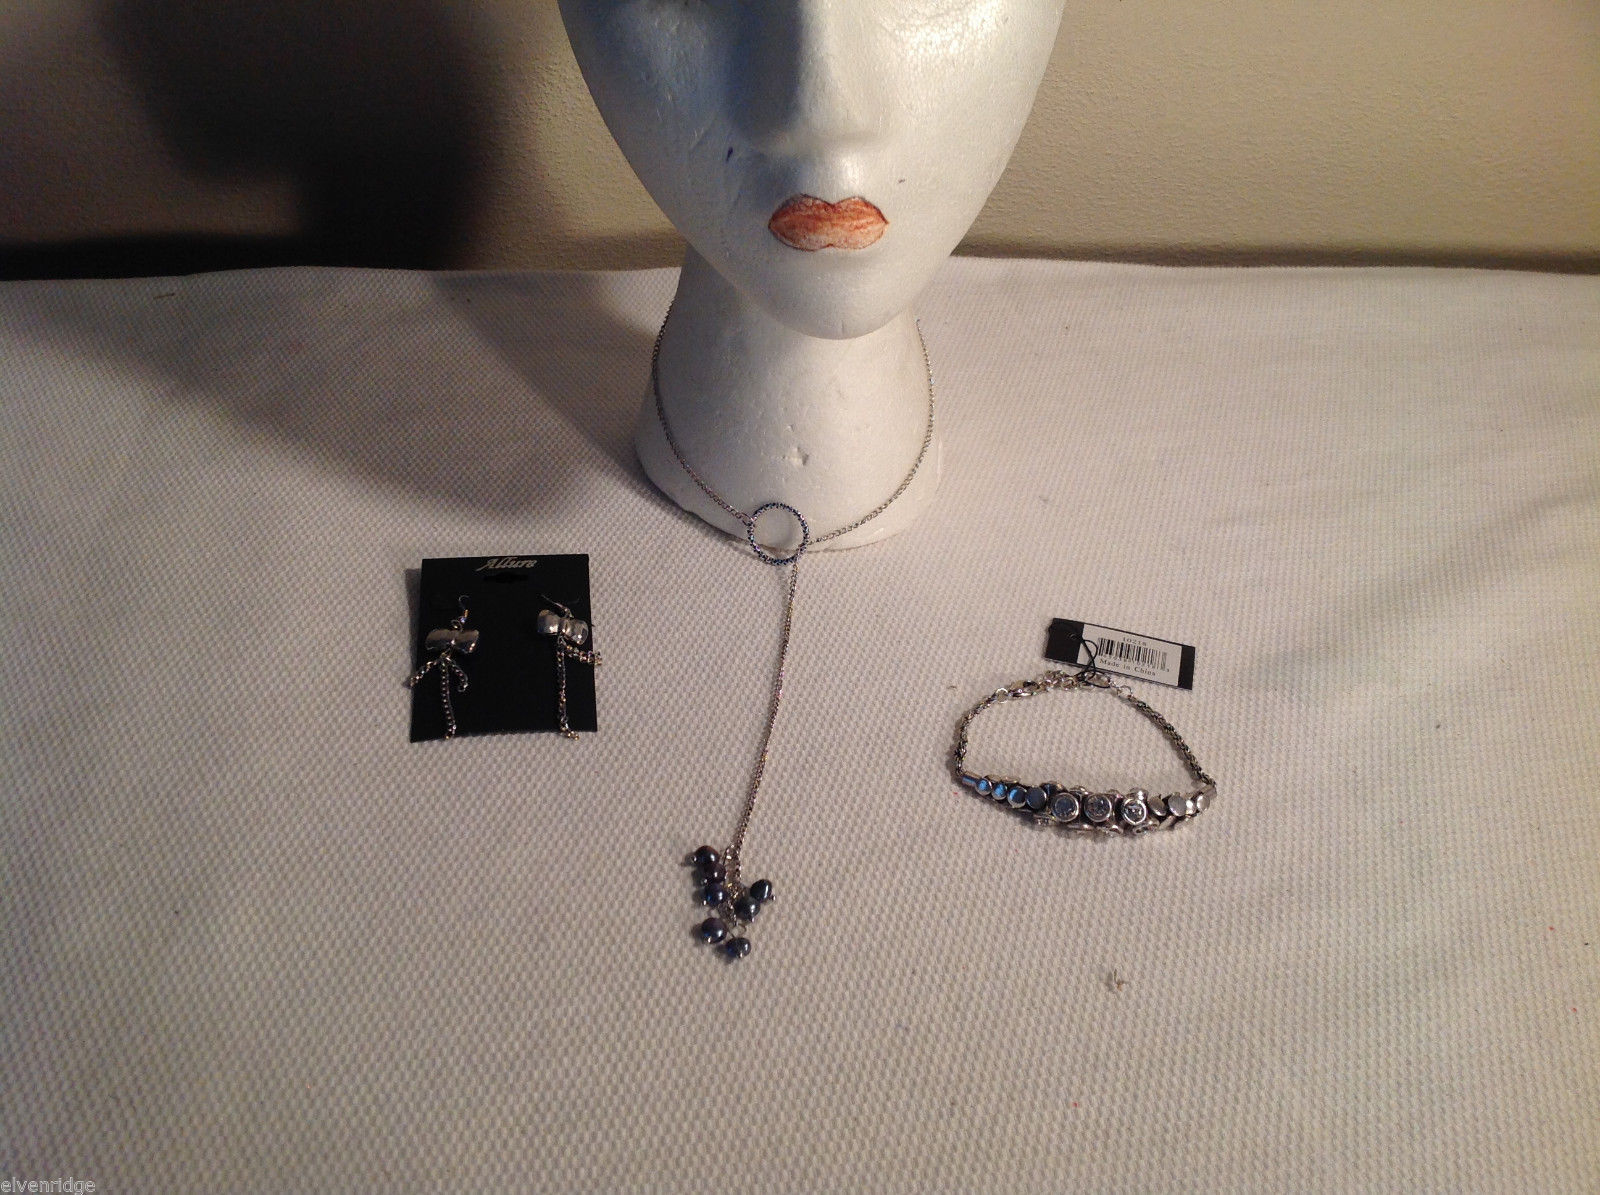 3 pc lot - necklace, earrings, bracelet, black pearls CZs Allure